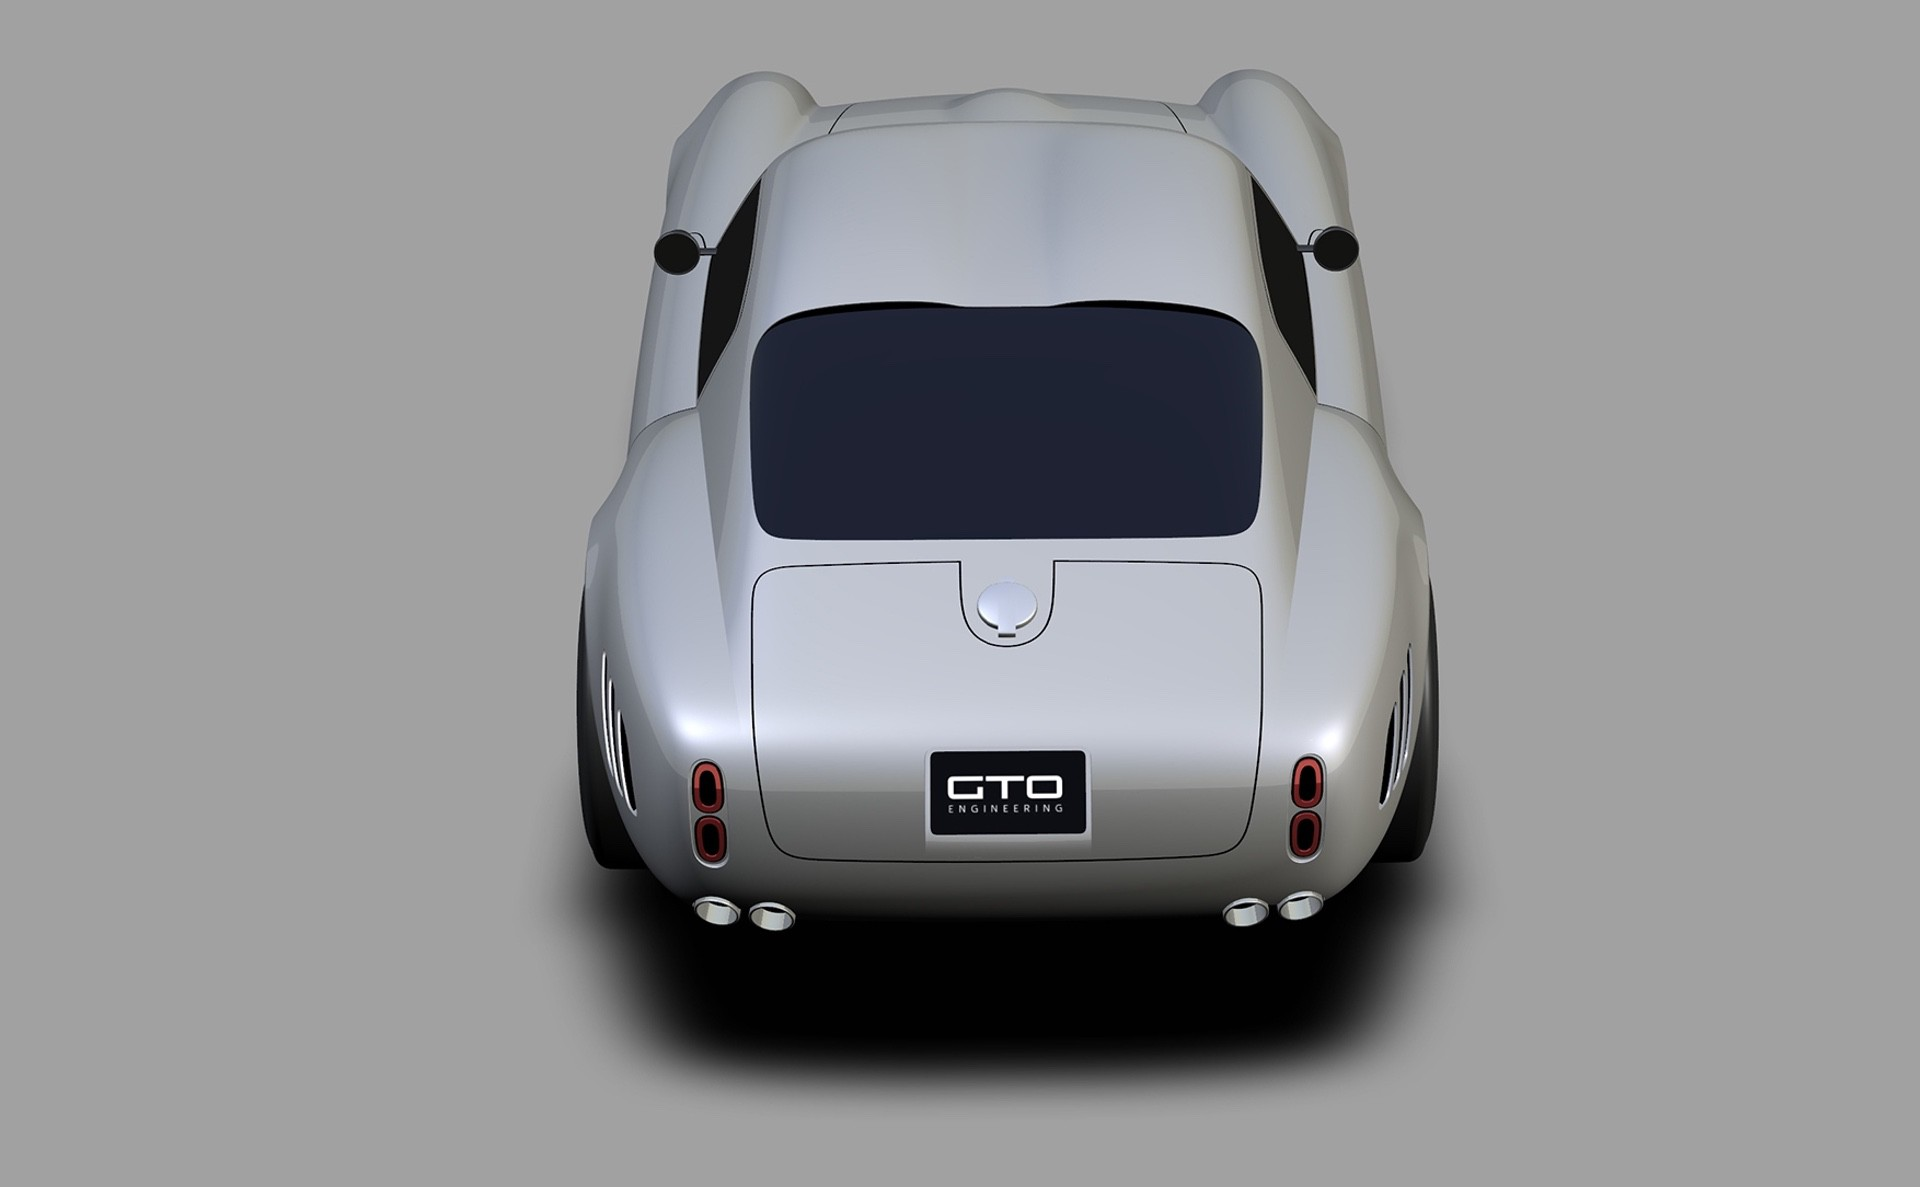 5.-Project-Moderna-underway-with-key-engine-and-design-updates-revealed-by-GTO-Engineering